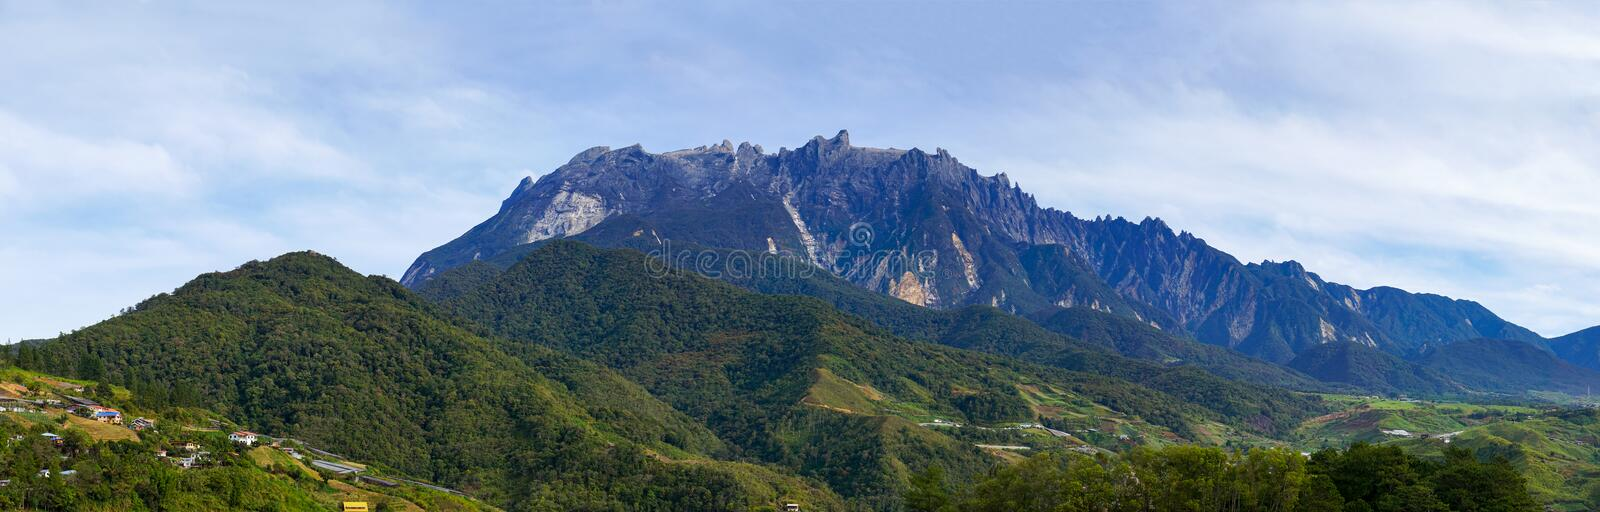 Mount Kinabalu and upper part of Kundasang panorama morning shot. Mount Kinabalu and upper part of Kundasang, including the famous Desa Cattle dairy farm and stock images